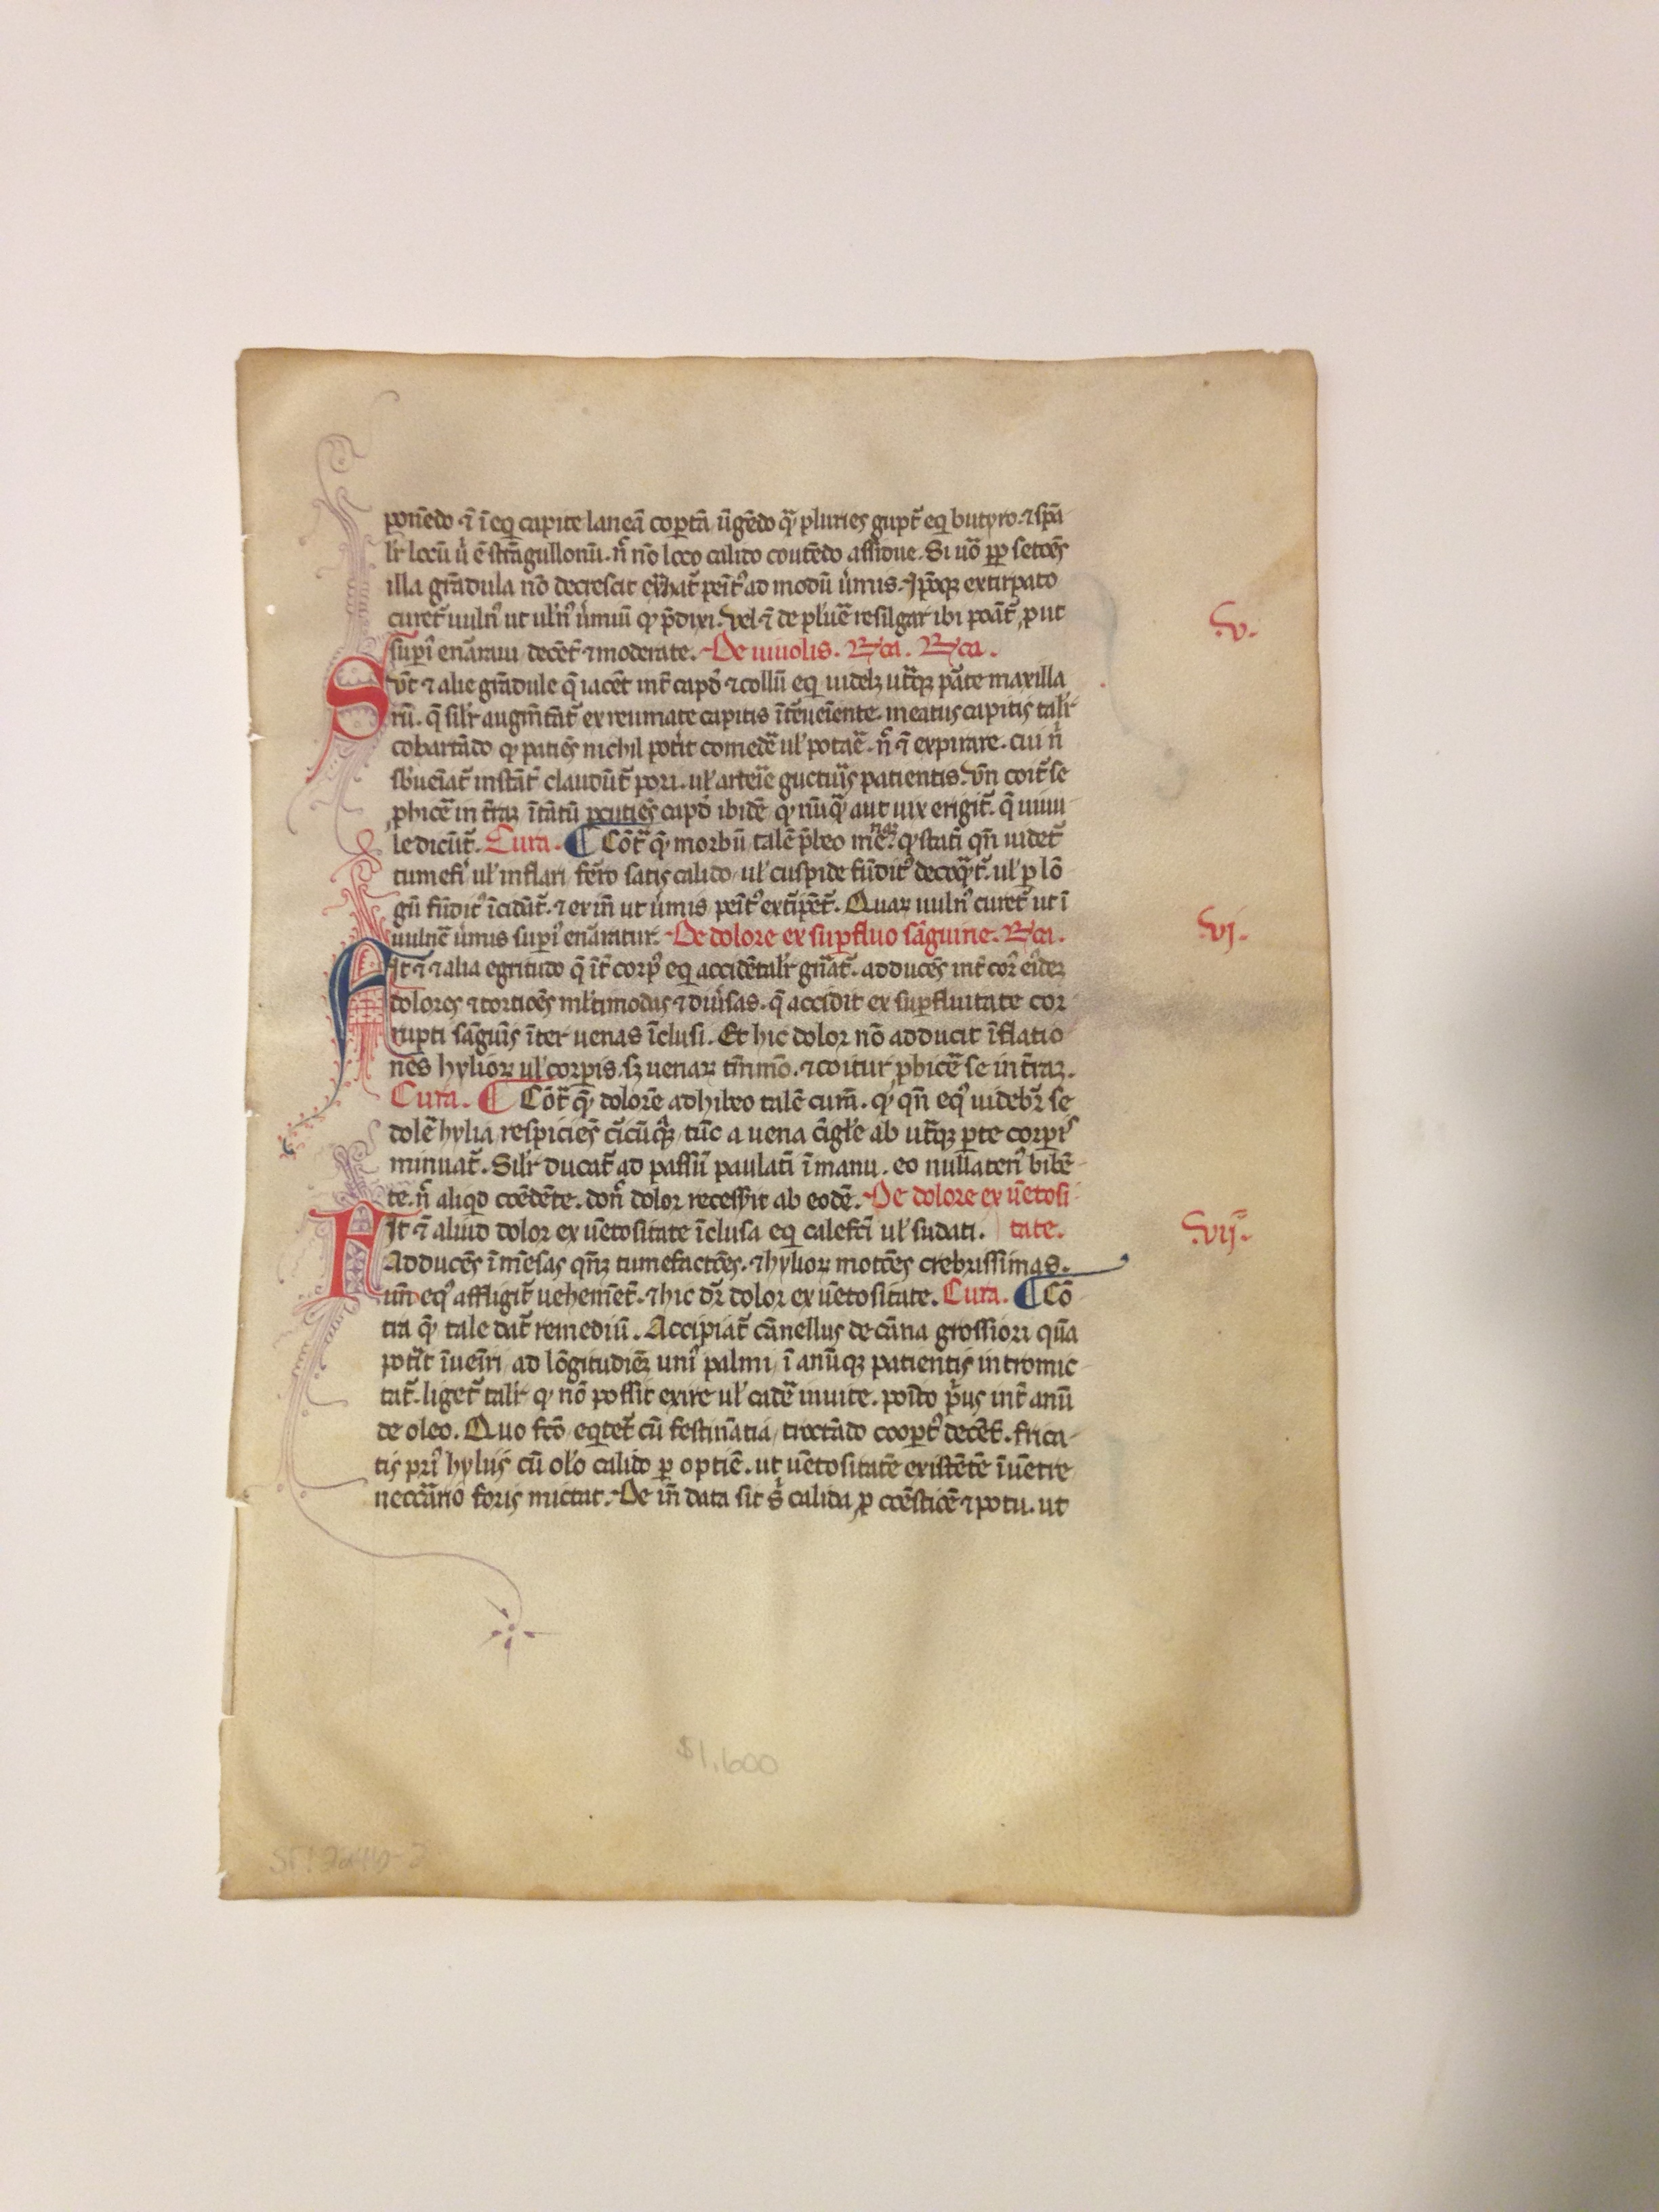 The manuscript leaves are finely rubricated in red and blue with incipits, paragraph marks, chapter numbers in the outer margin, and fine initial letters with penwork embellishments in red or purple.